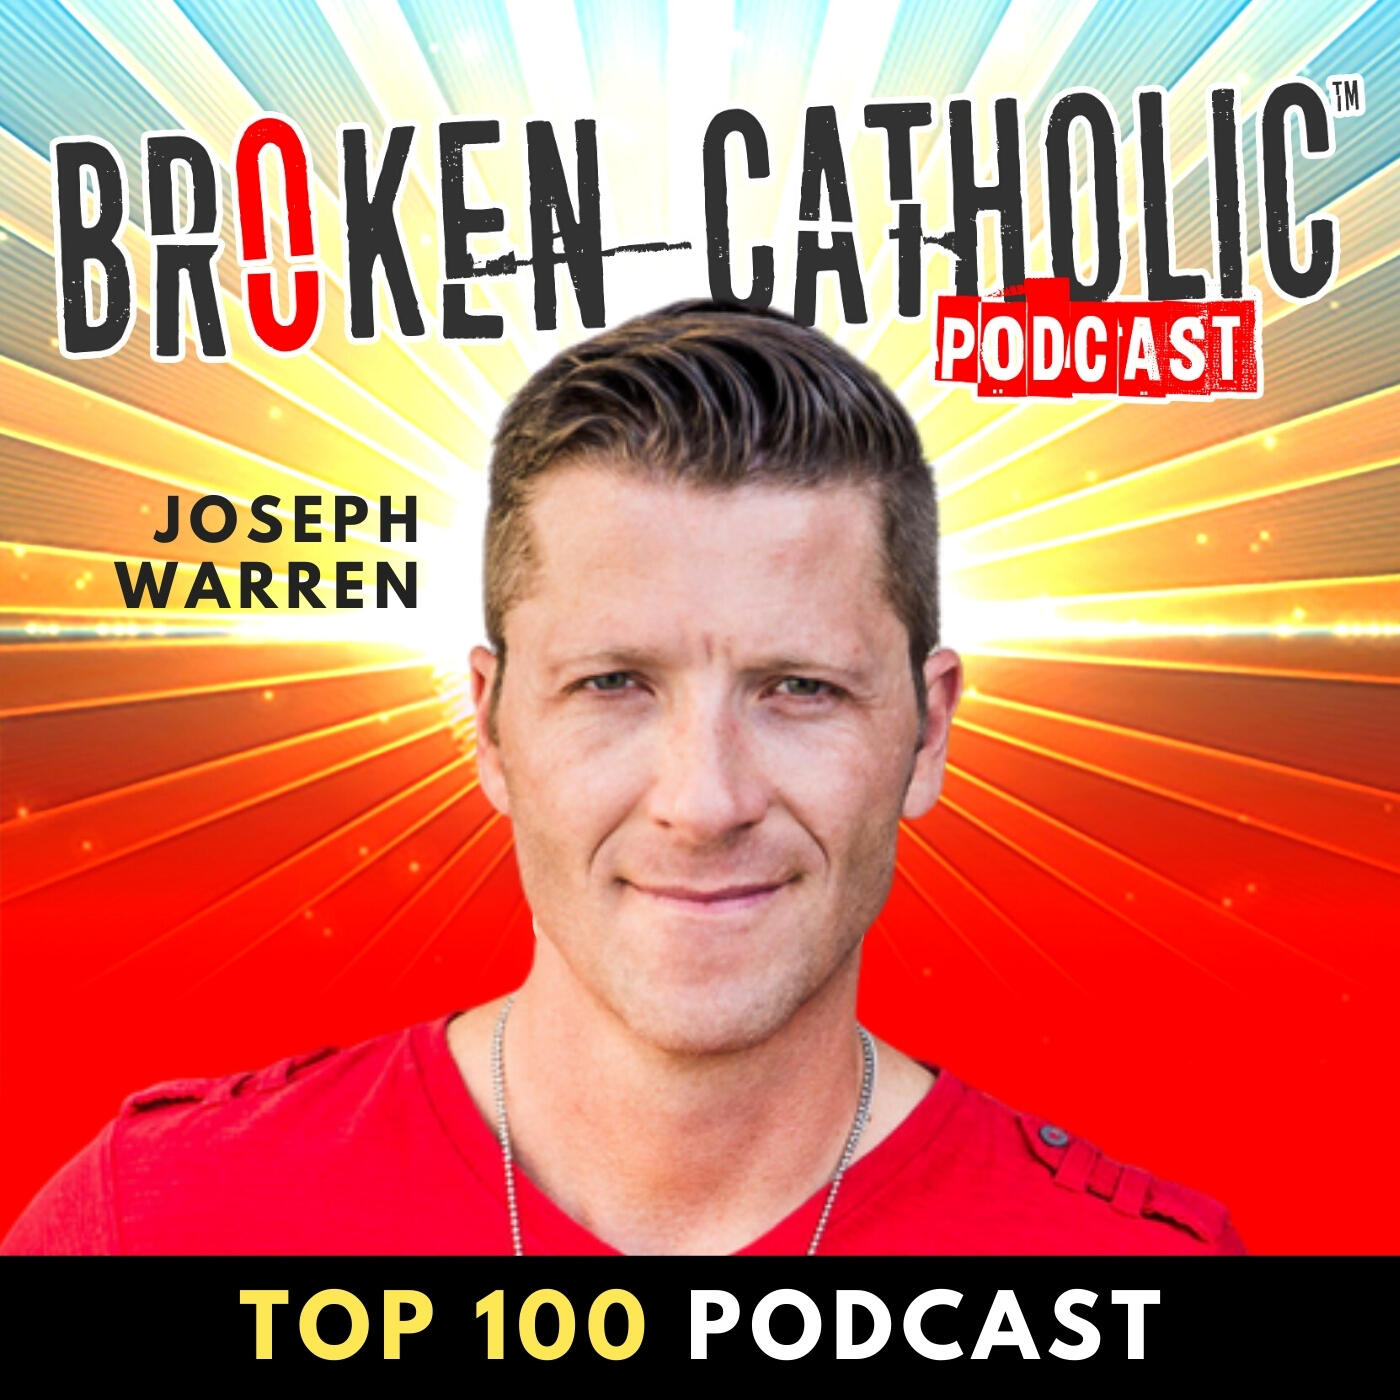 THE BROKEN CATHOLIC SHOW - Life Coaching, Family Transformation, & Spiritual Growth for Christian Men and Women